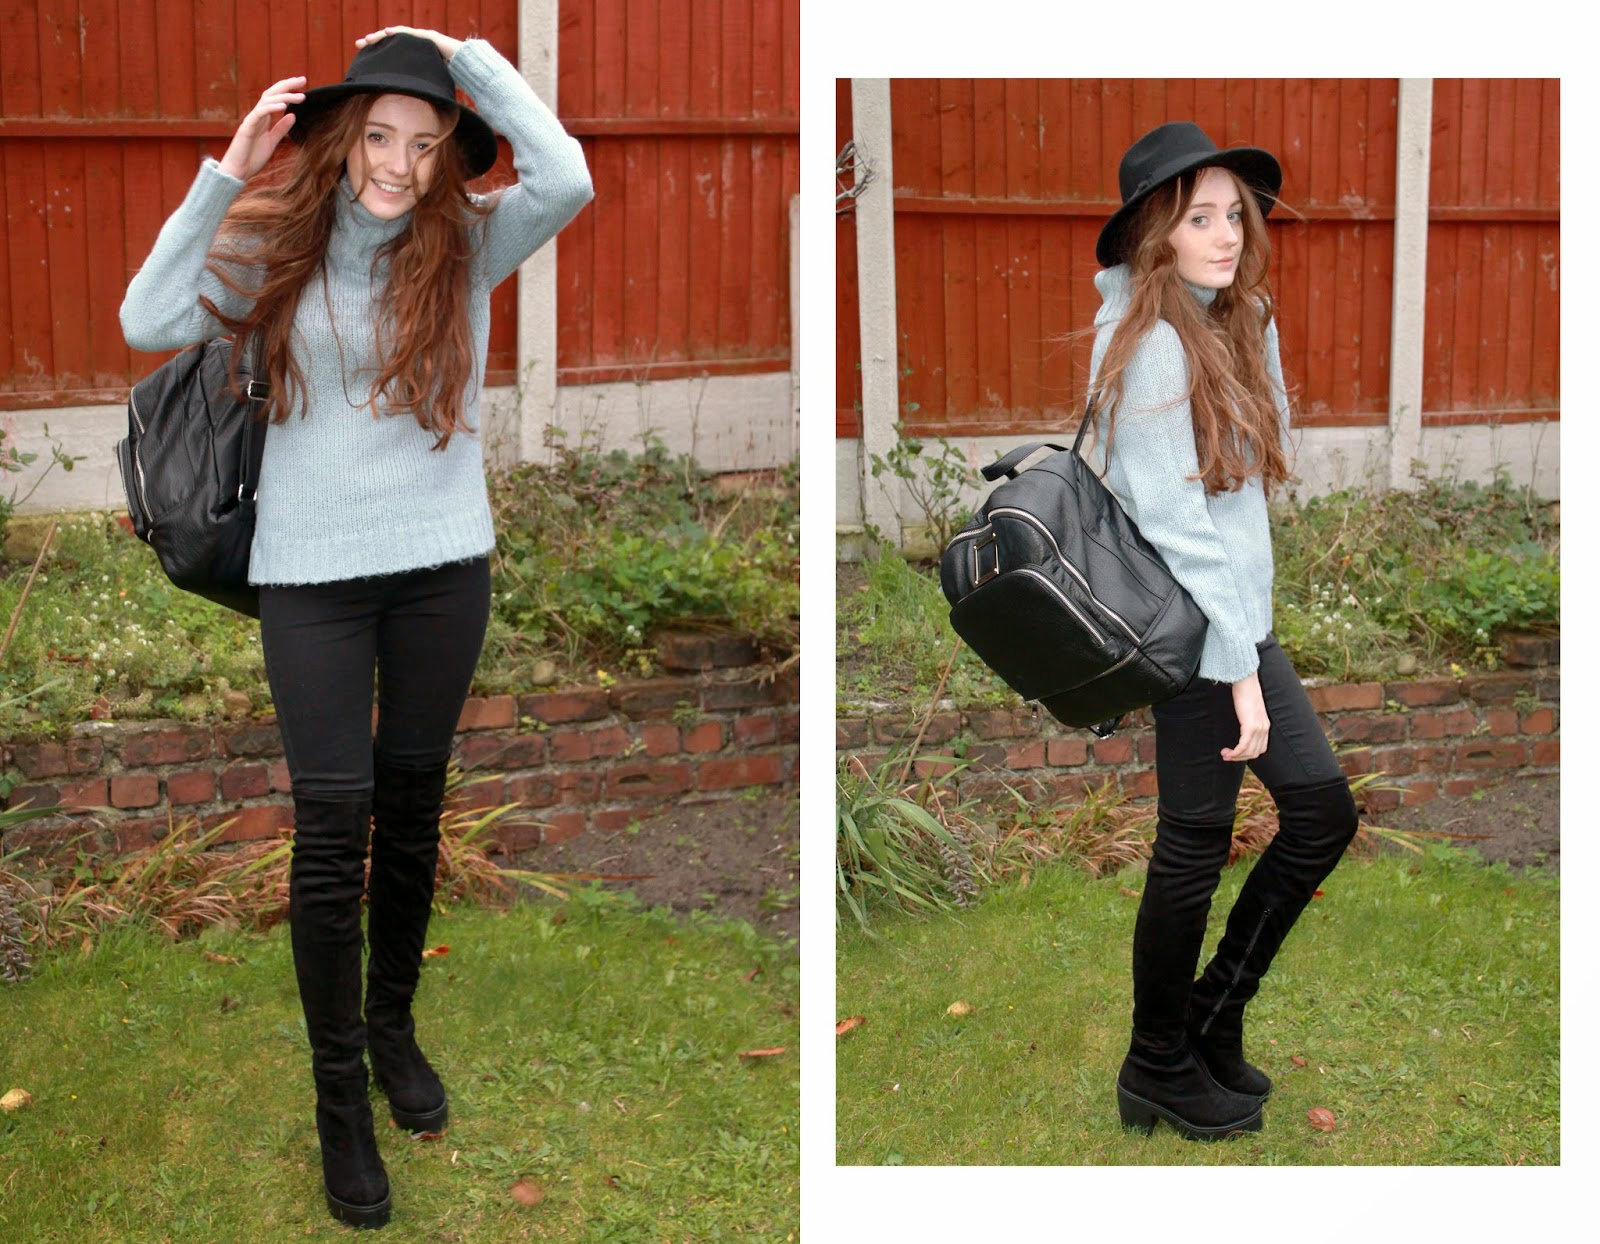 black primark fedora, pale blue roll neck jumper, asos black backpack, black river island lana skinny jeans and river island black heeled suede over the knee boots